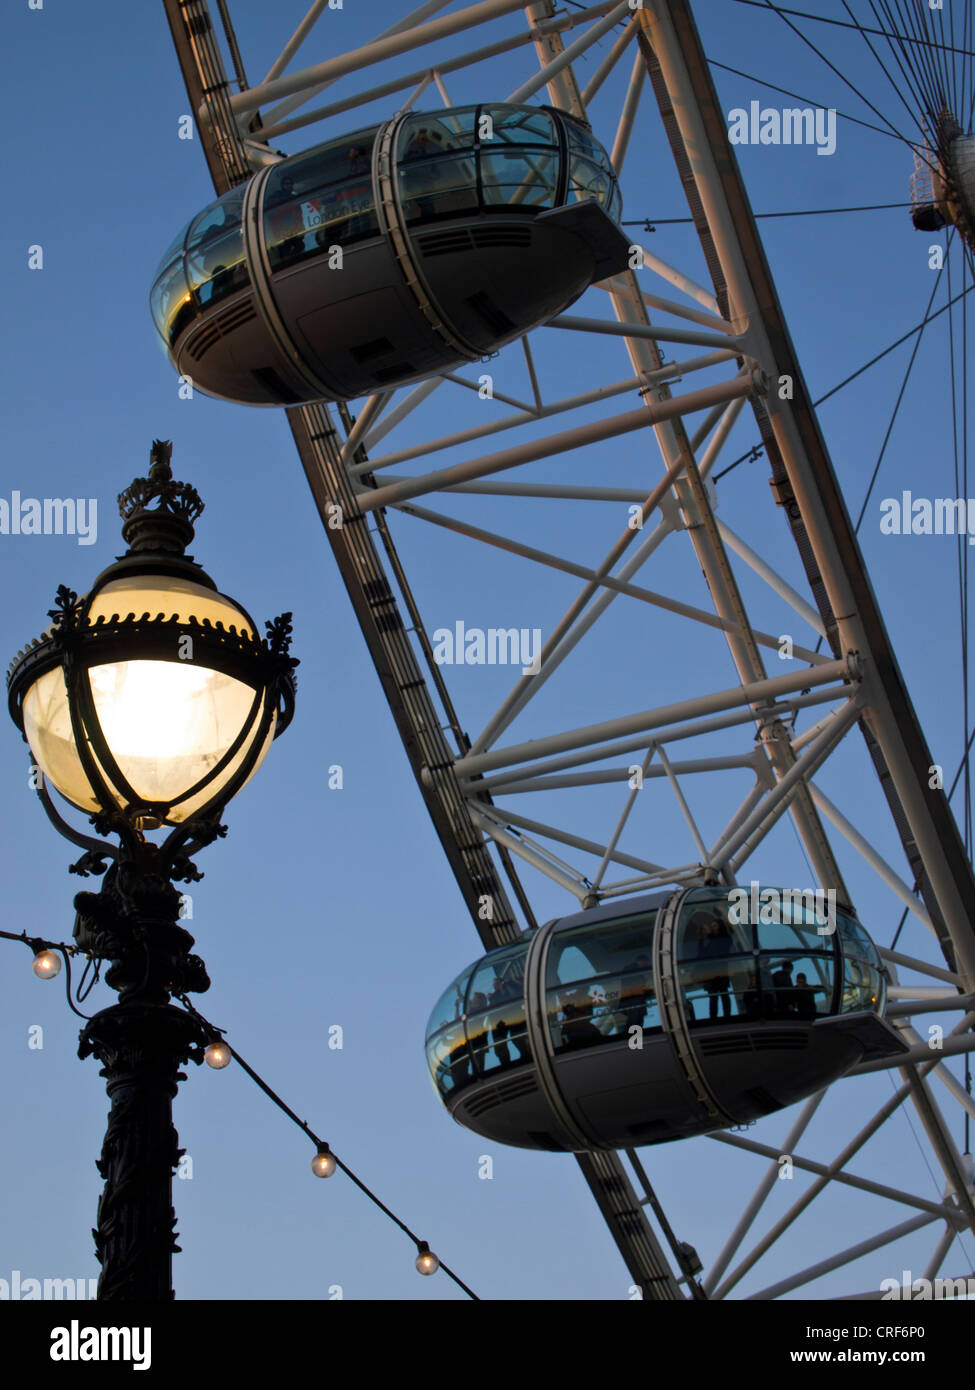 England, Greater London, London Borough of Lambeth. The London Eye (also known as the Millennium Wheel) the tallest - Stock Image